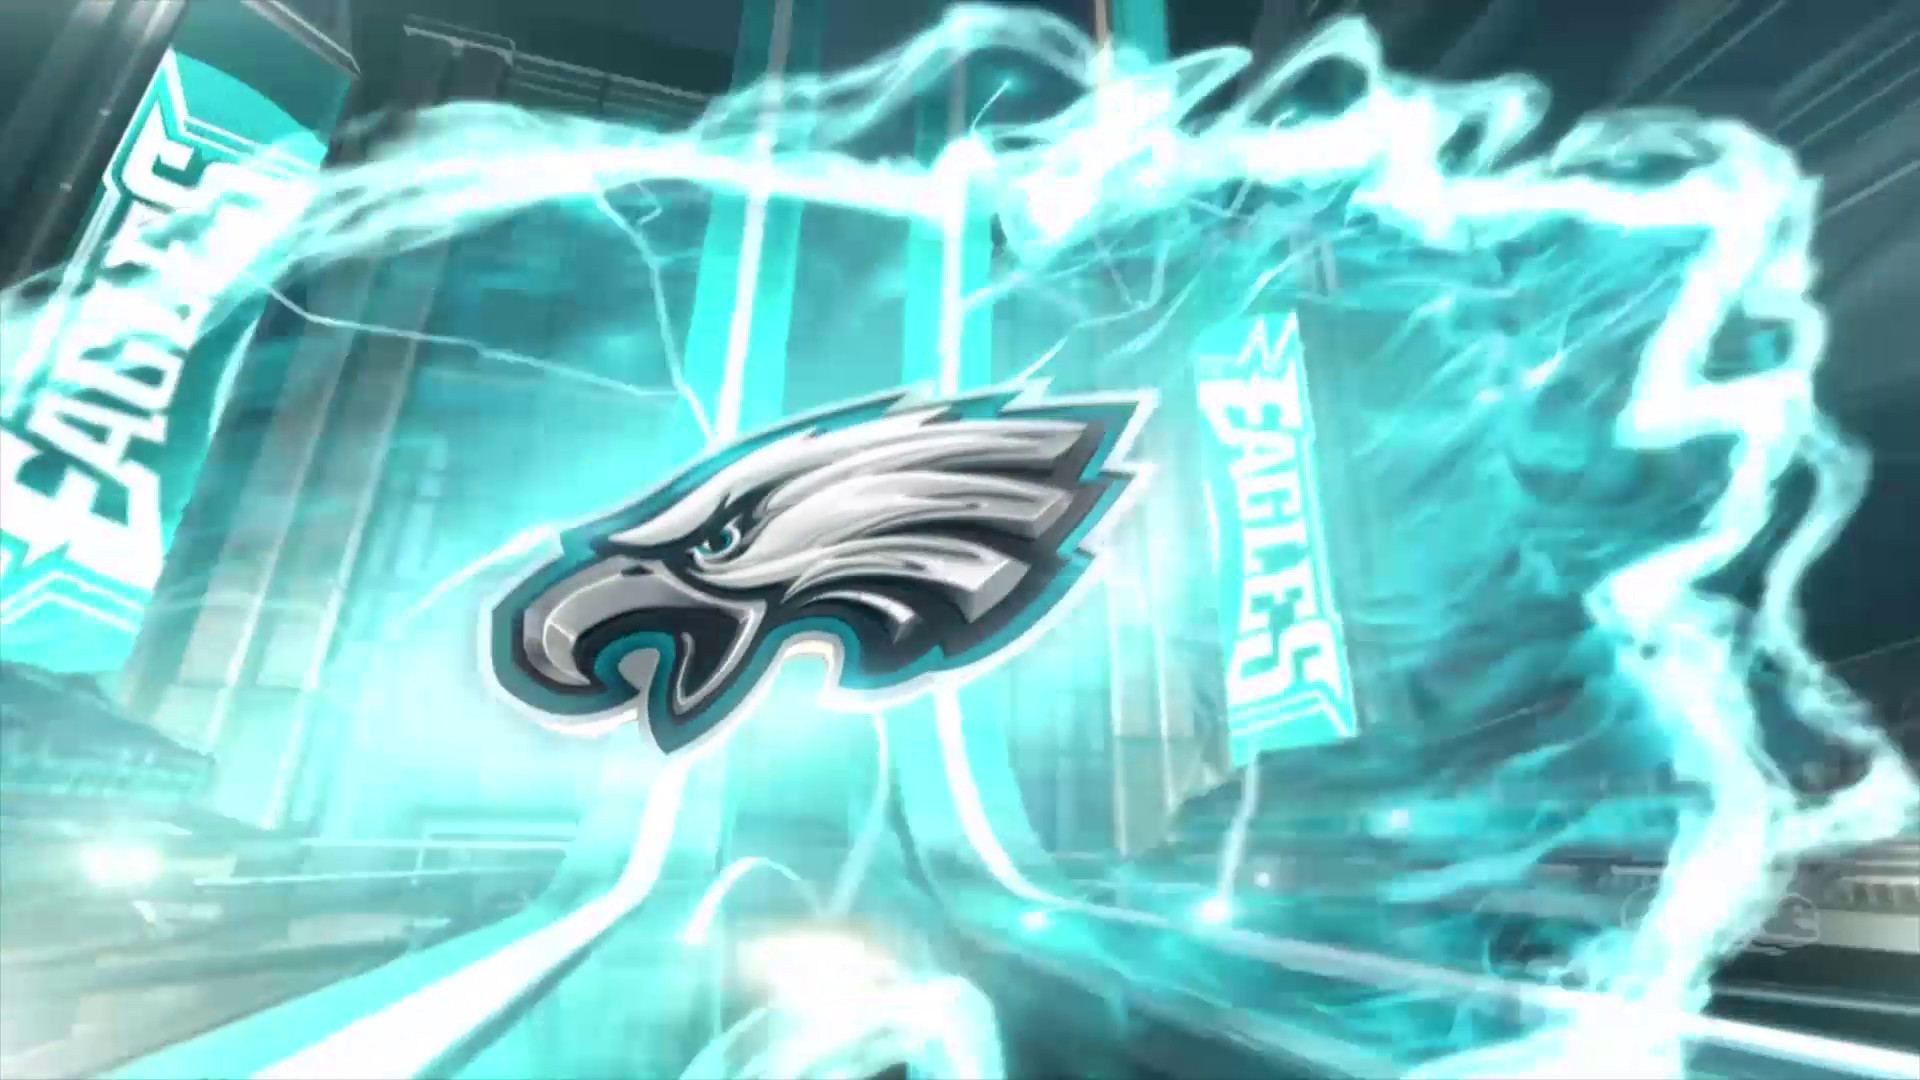 1920x1080 Philadelphia Eagles Iphone X Wallpaper Best Of Free Amazing 3d Source · NAB  2015 Rewind Cinema 4D MoGraph Project Breakdown Presentations